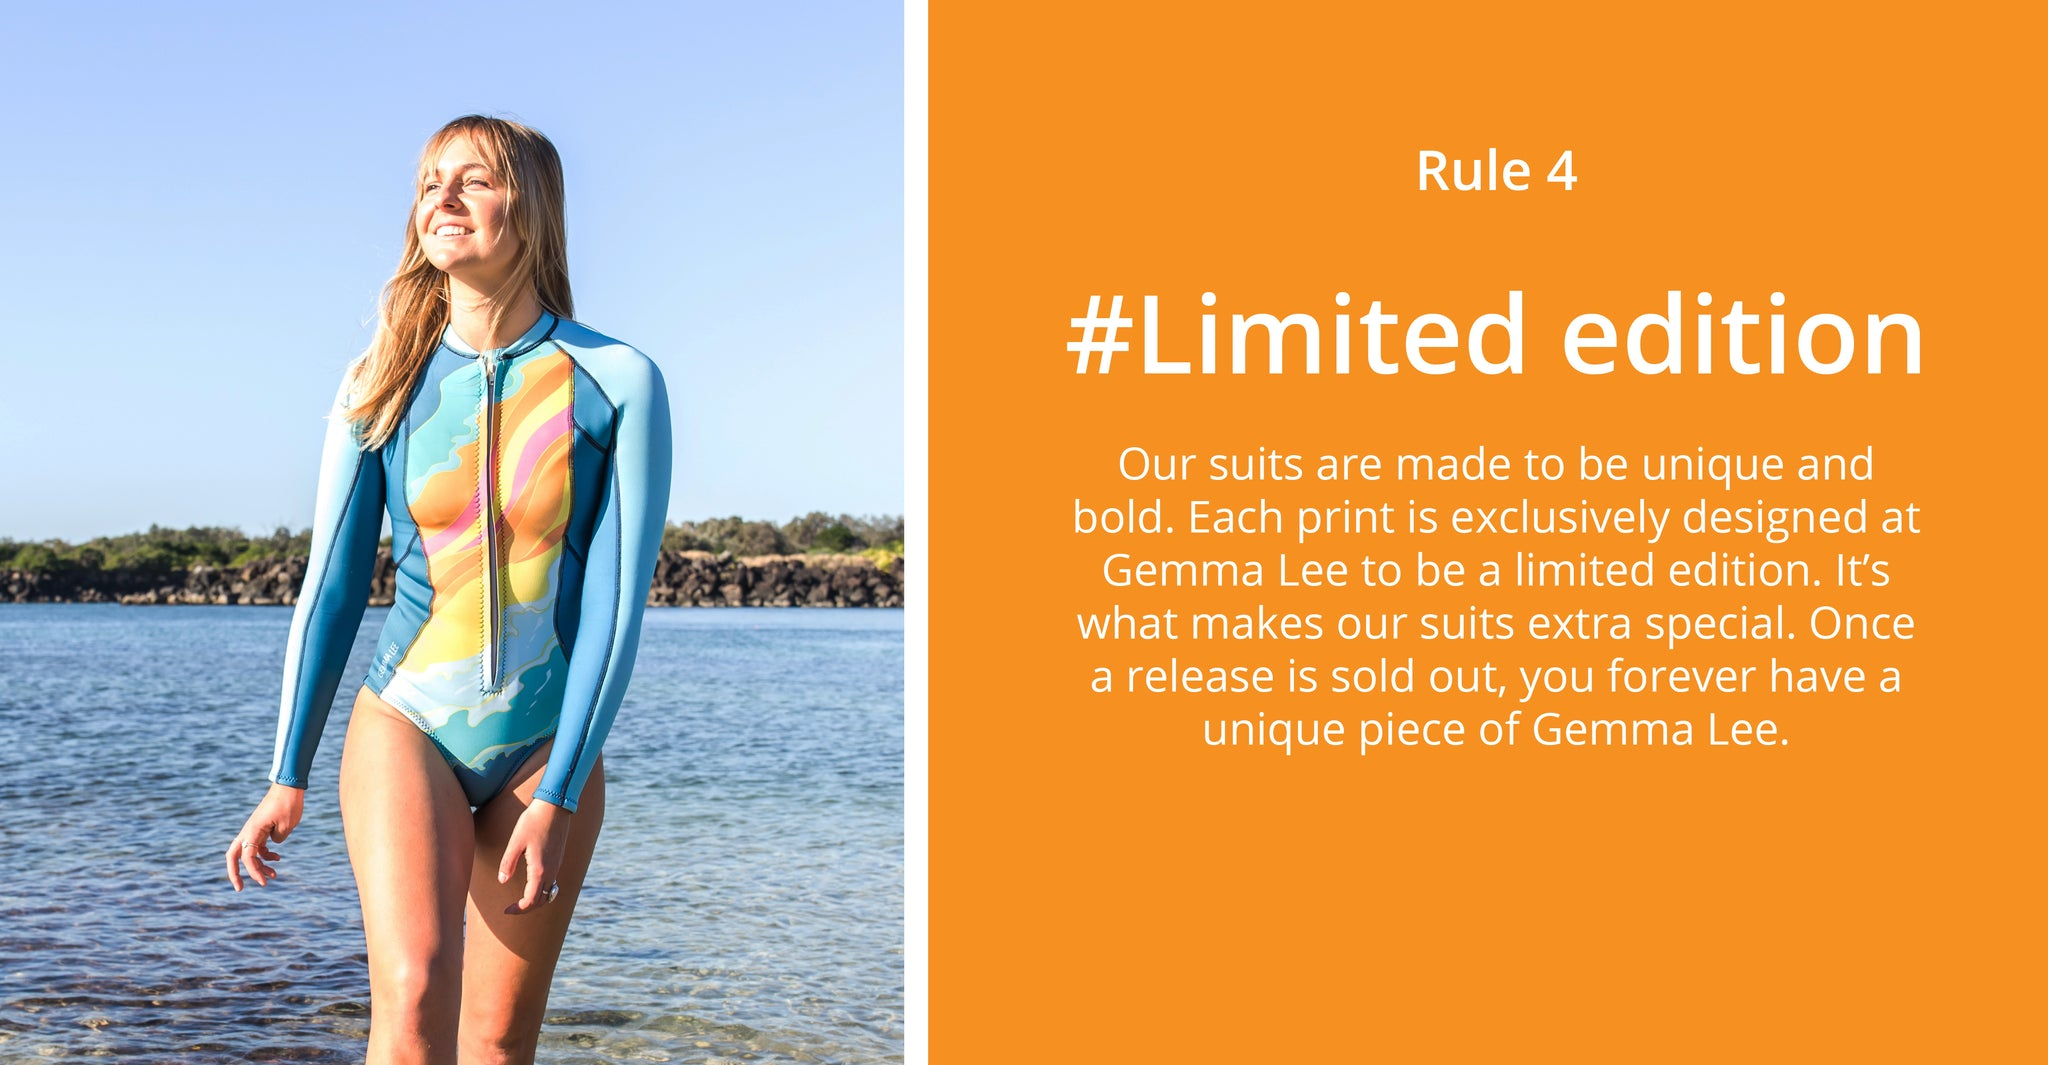 Colourful Designer Women's Surfing Wetsuits. Ethically made in Australia │ Sustainably Conscious Surfwear and Swimwear │